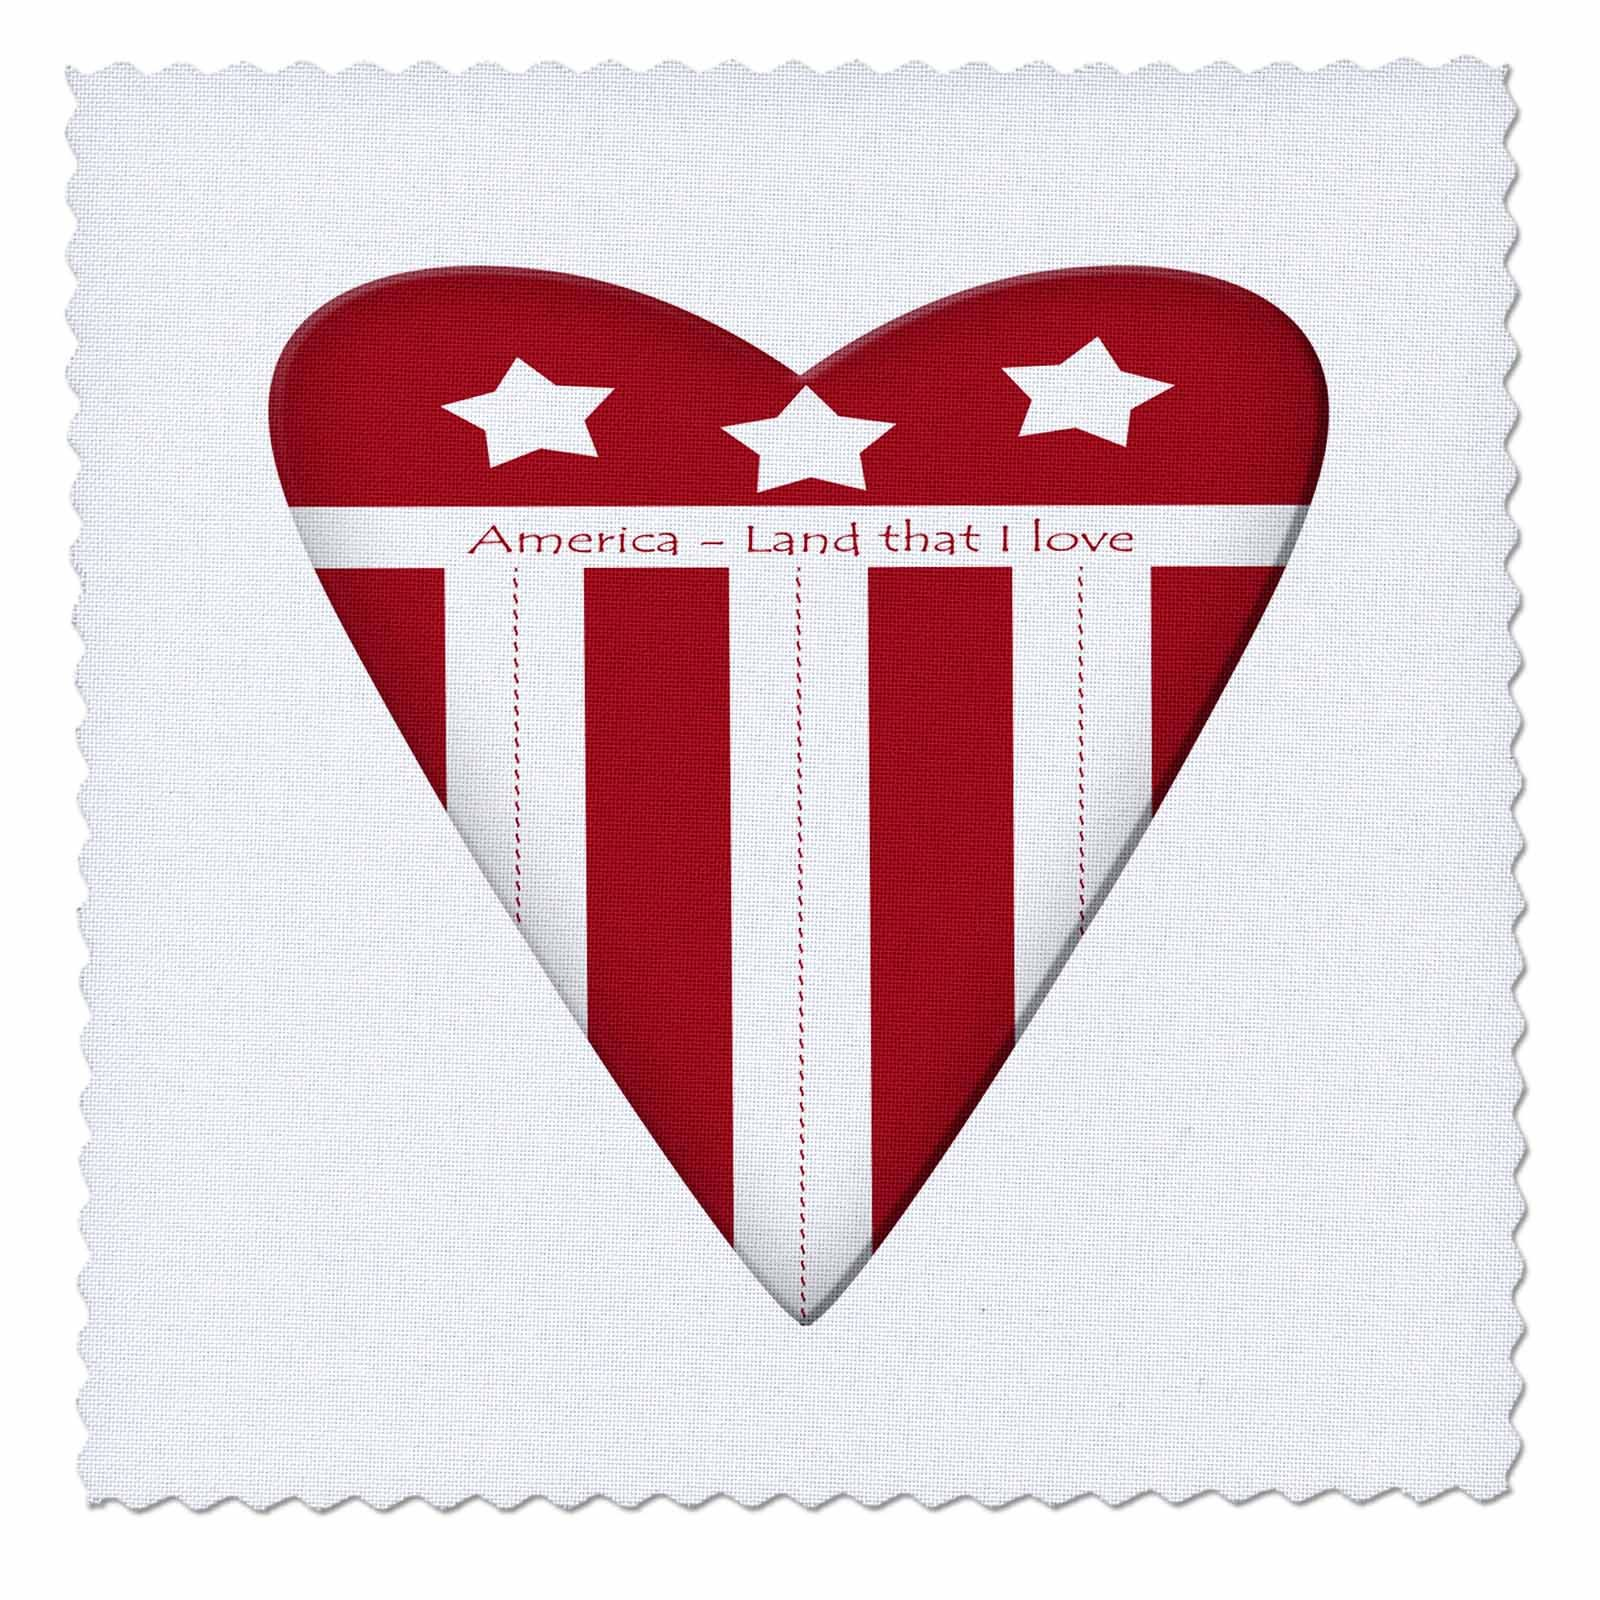 3dRose Anne Marie Baugh - Patriotic - America Land That I Love Red and White Americana Heart Illustration - 20x20 inch quilt square (qs_267631_8) by 3dRose (Image #1)